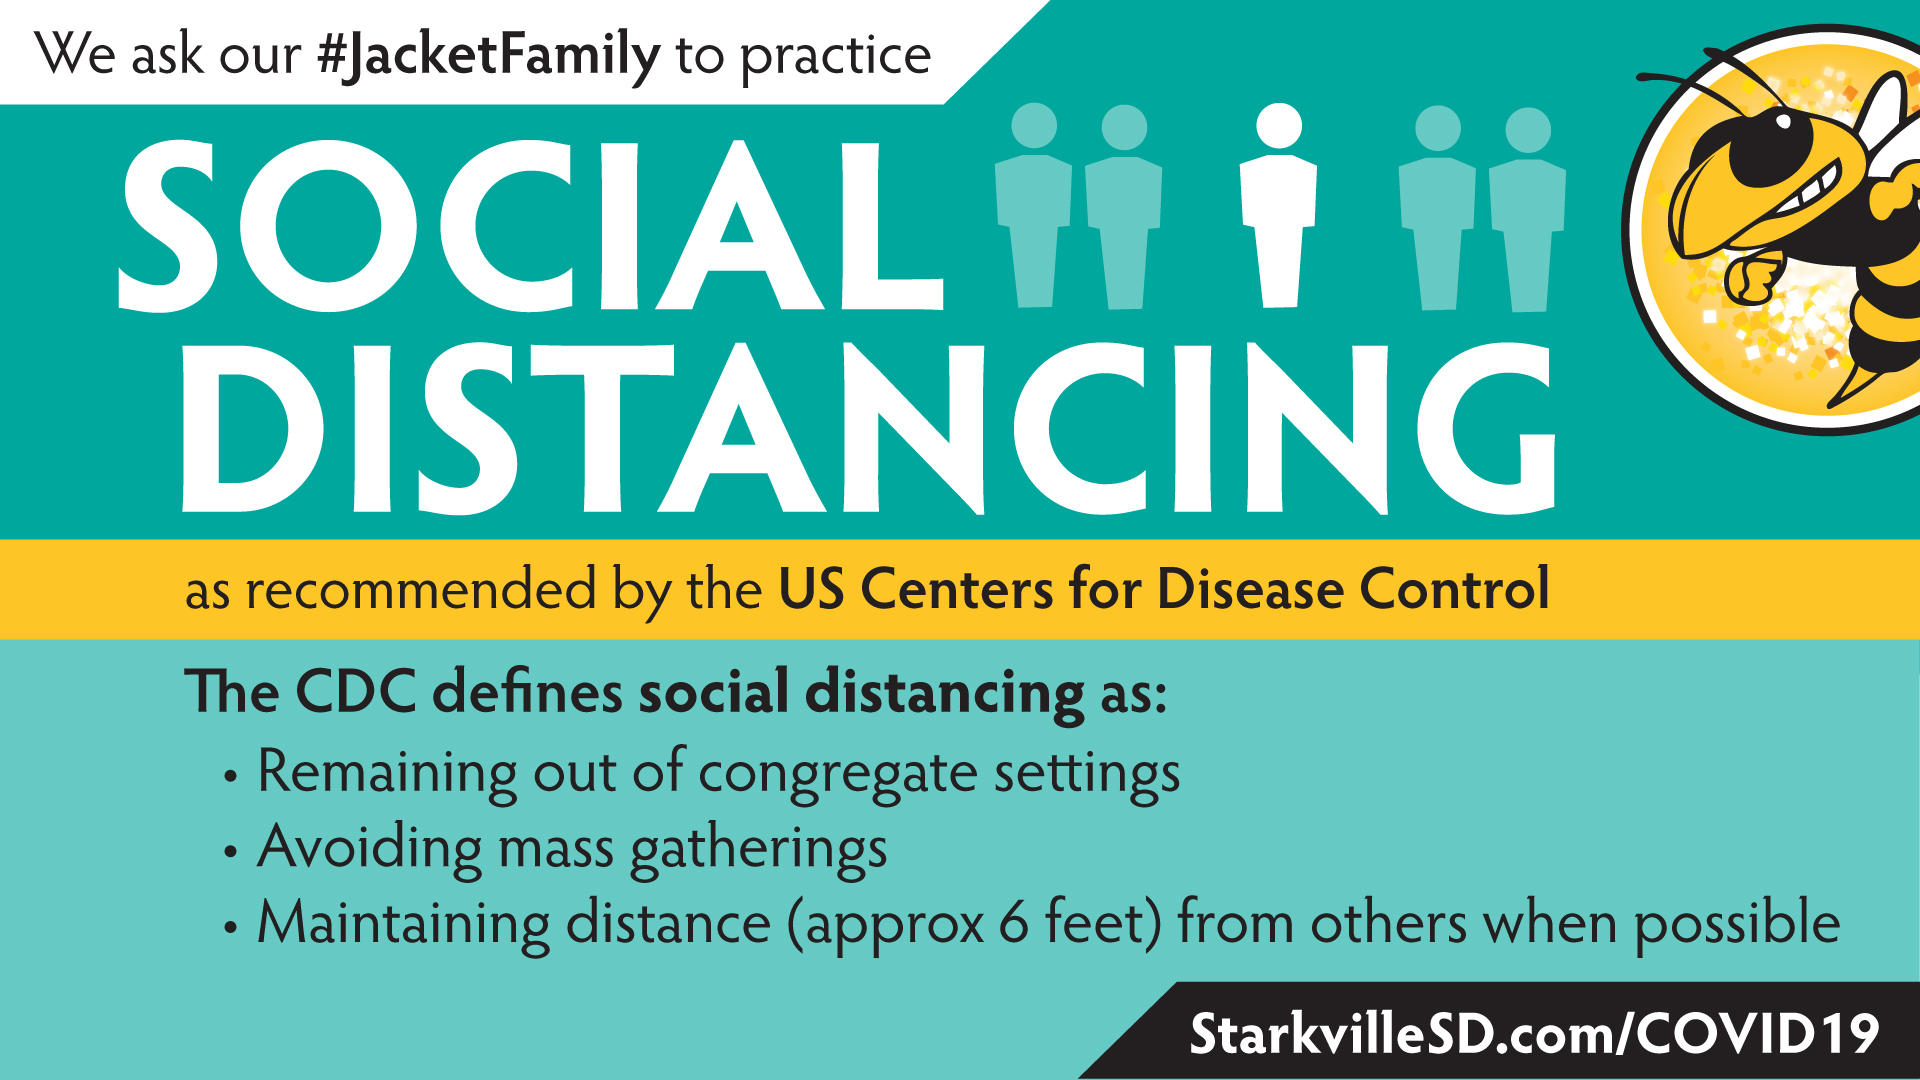 Centers for Disease Control definition of social distancing